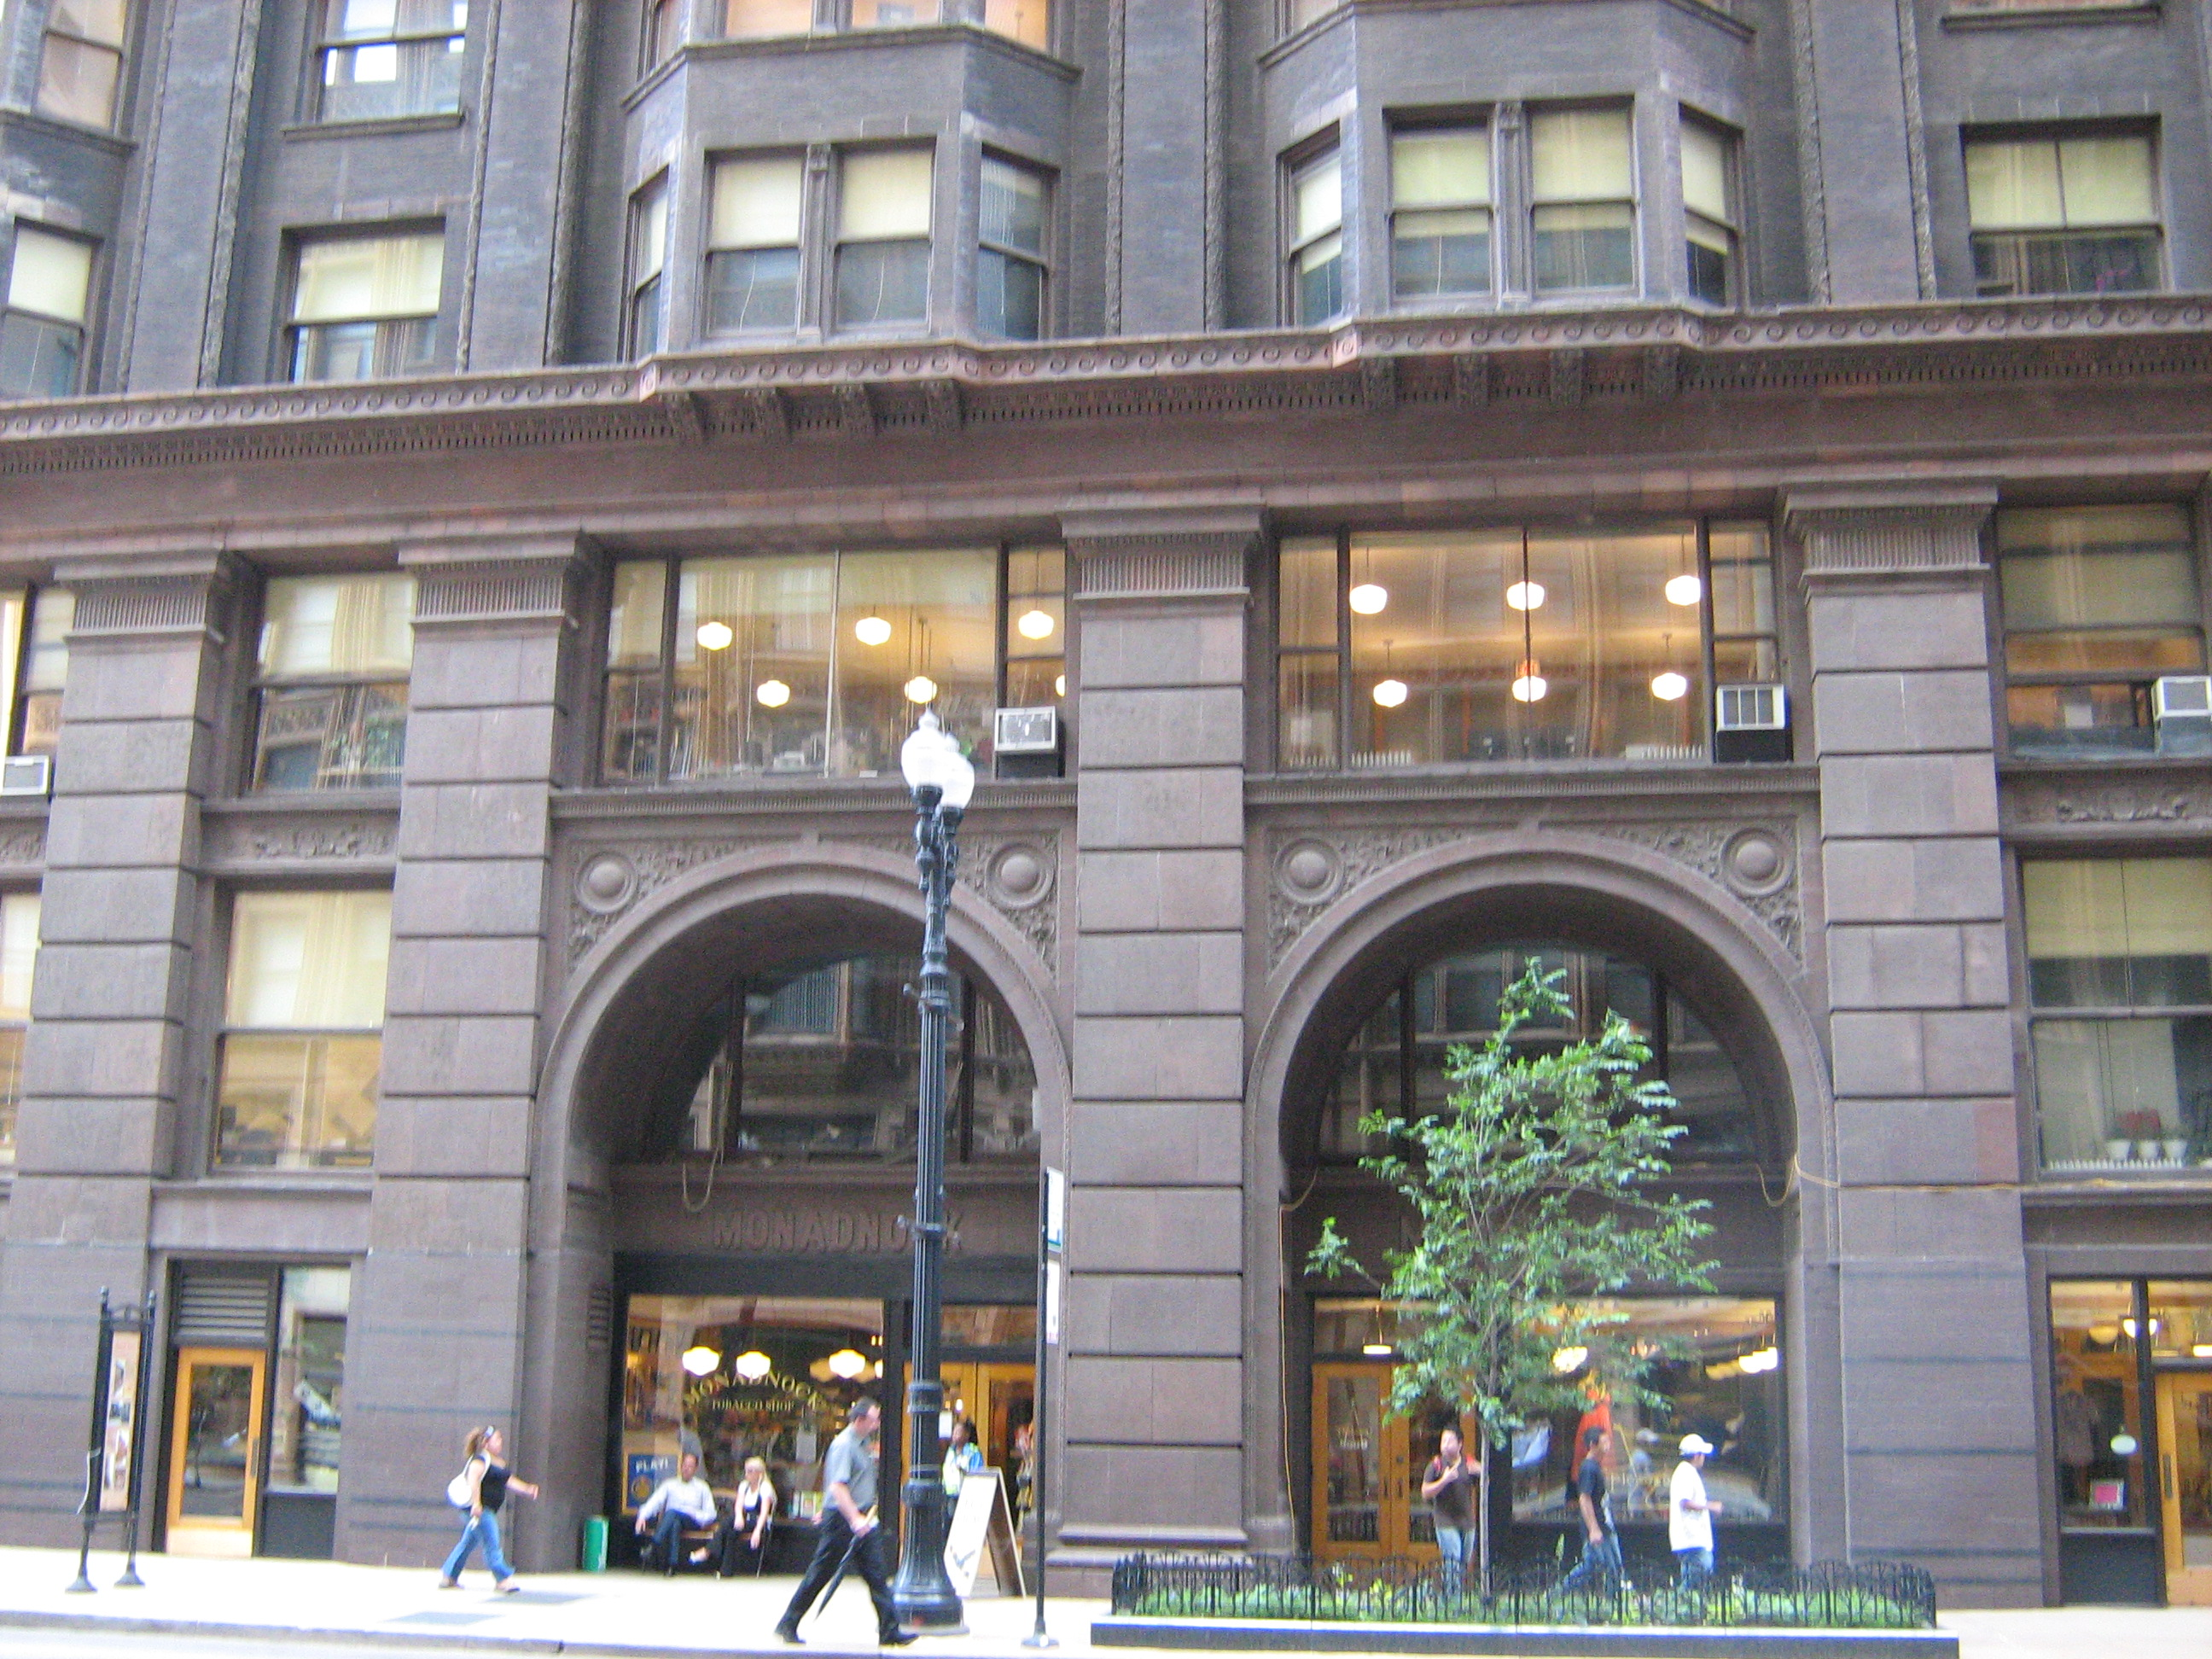 File:Monadnock Building East Facade.jpg - Wikipedia, the free ...